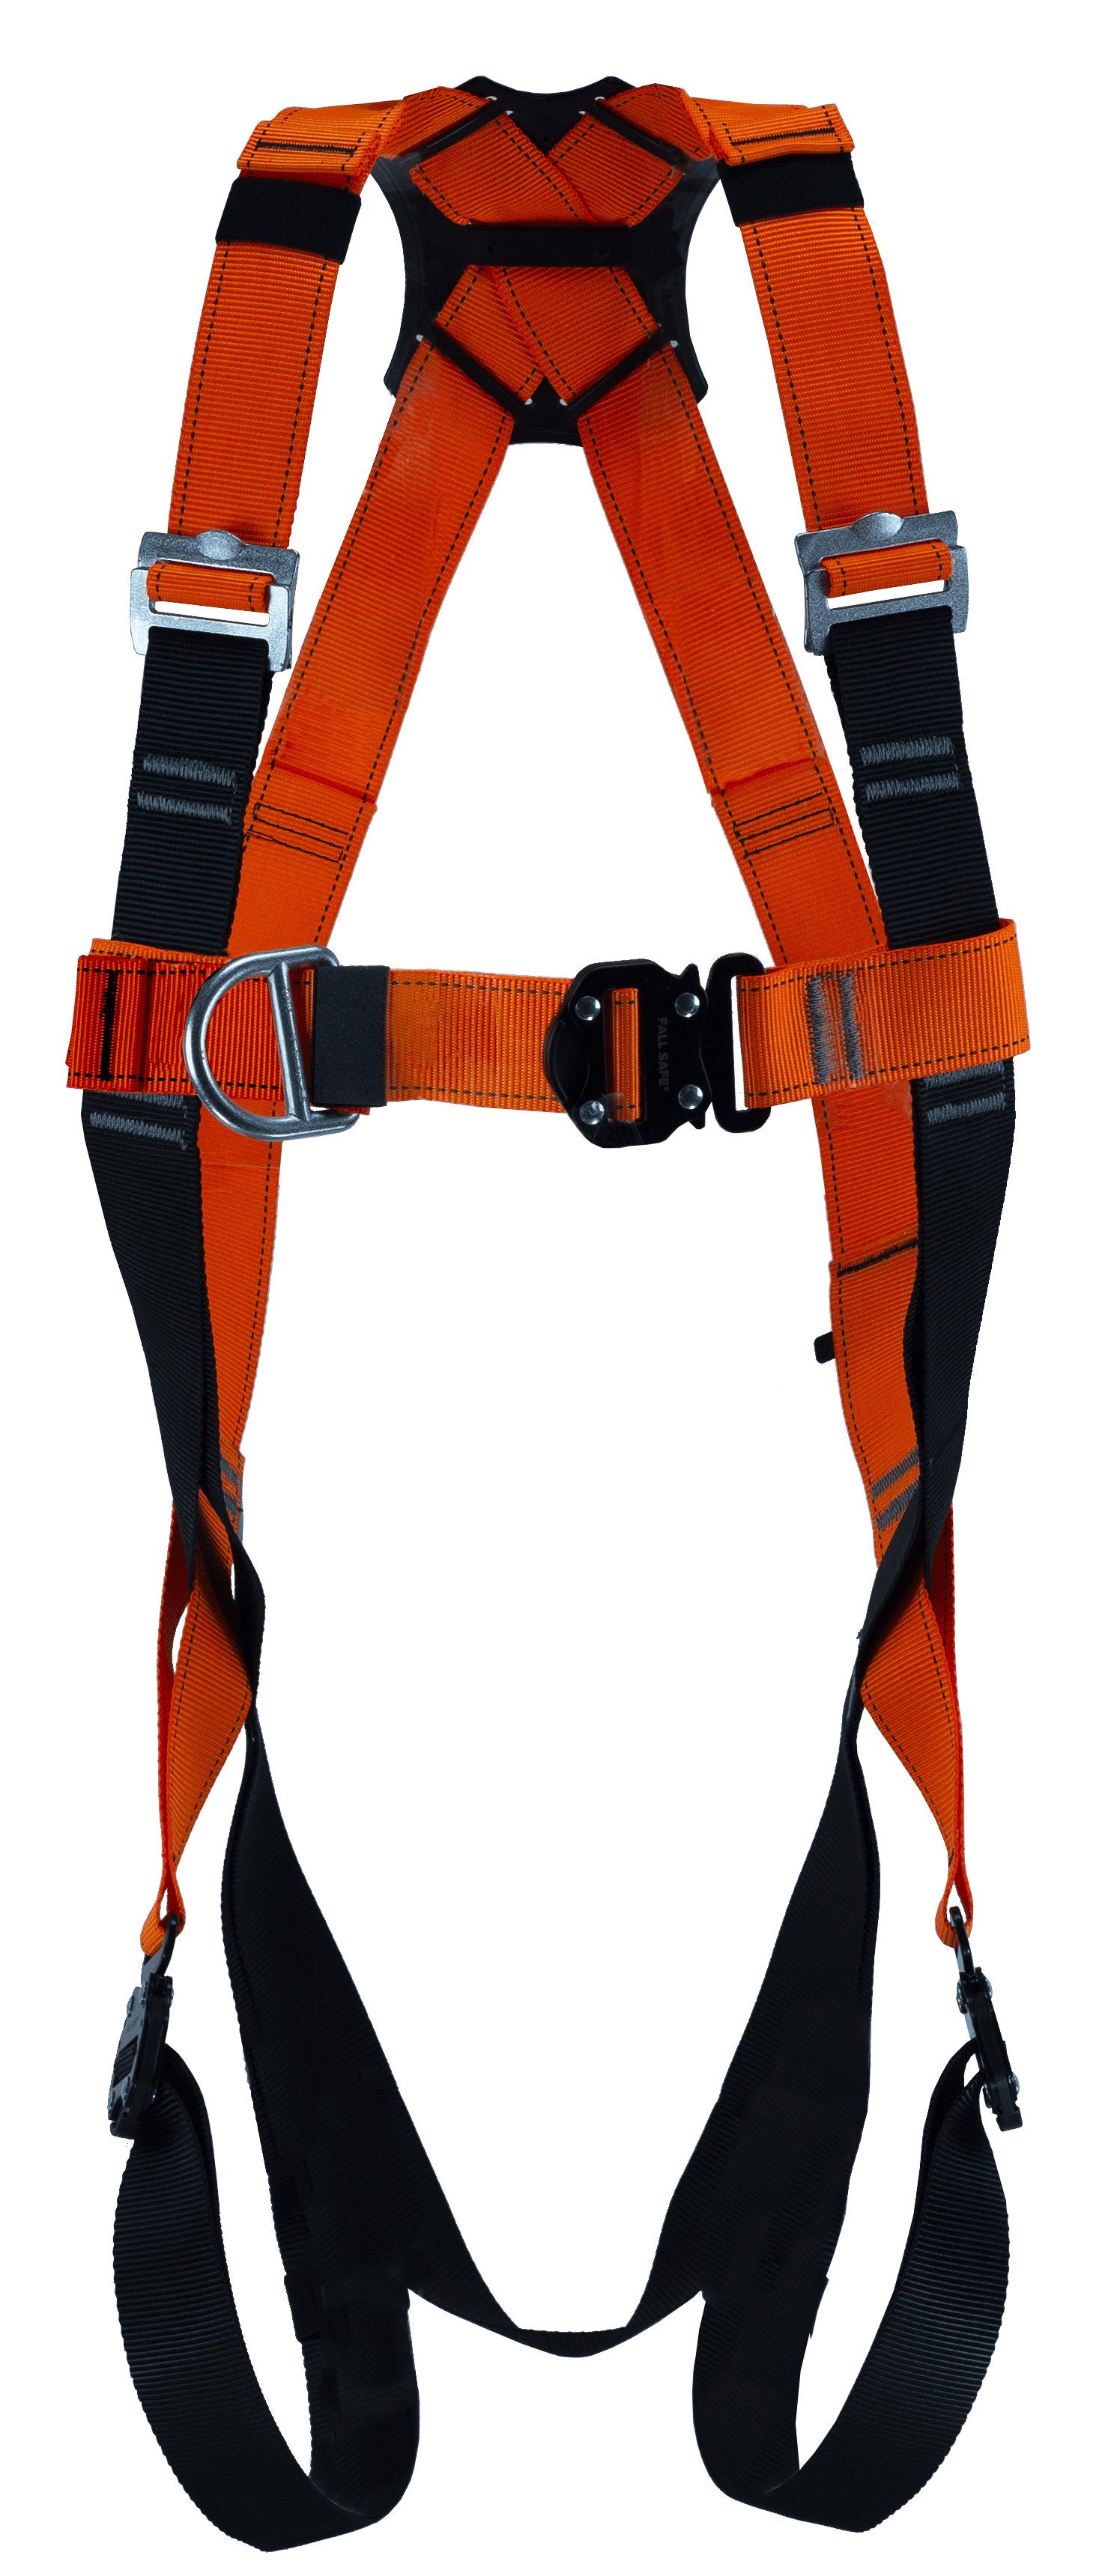 FALL ARREST HARNESS AQUILA 6